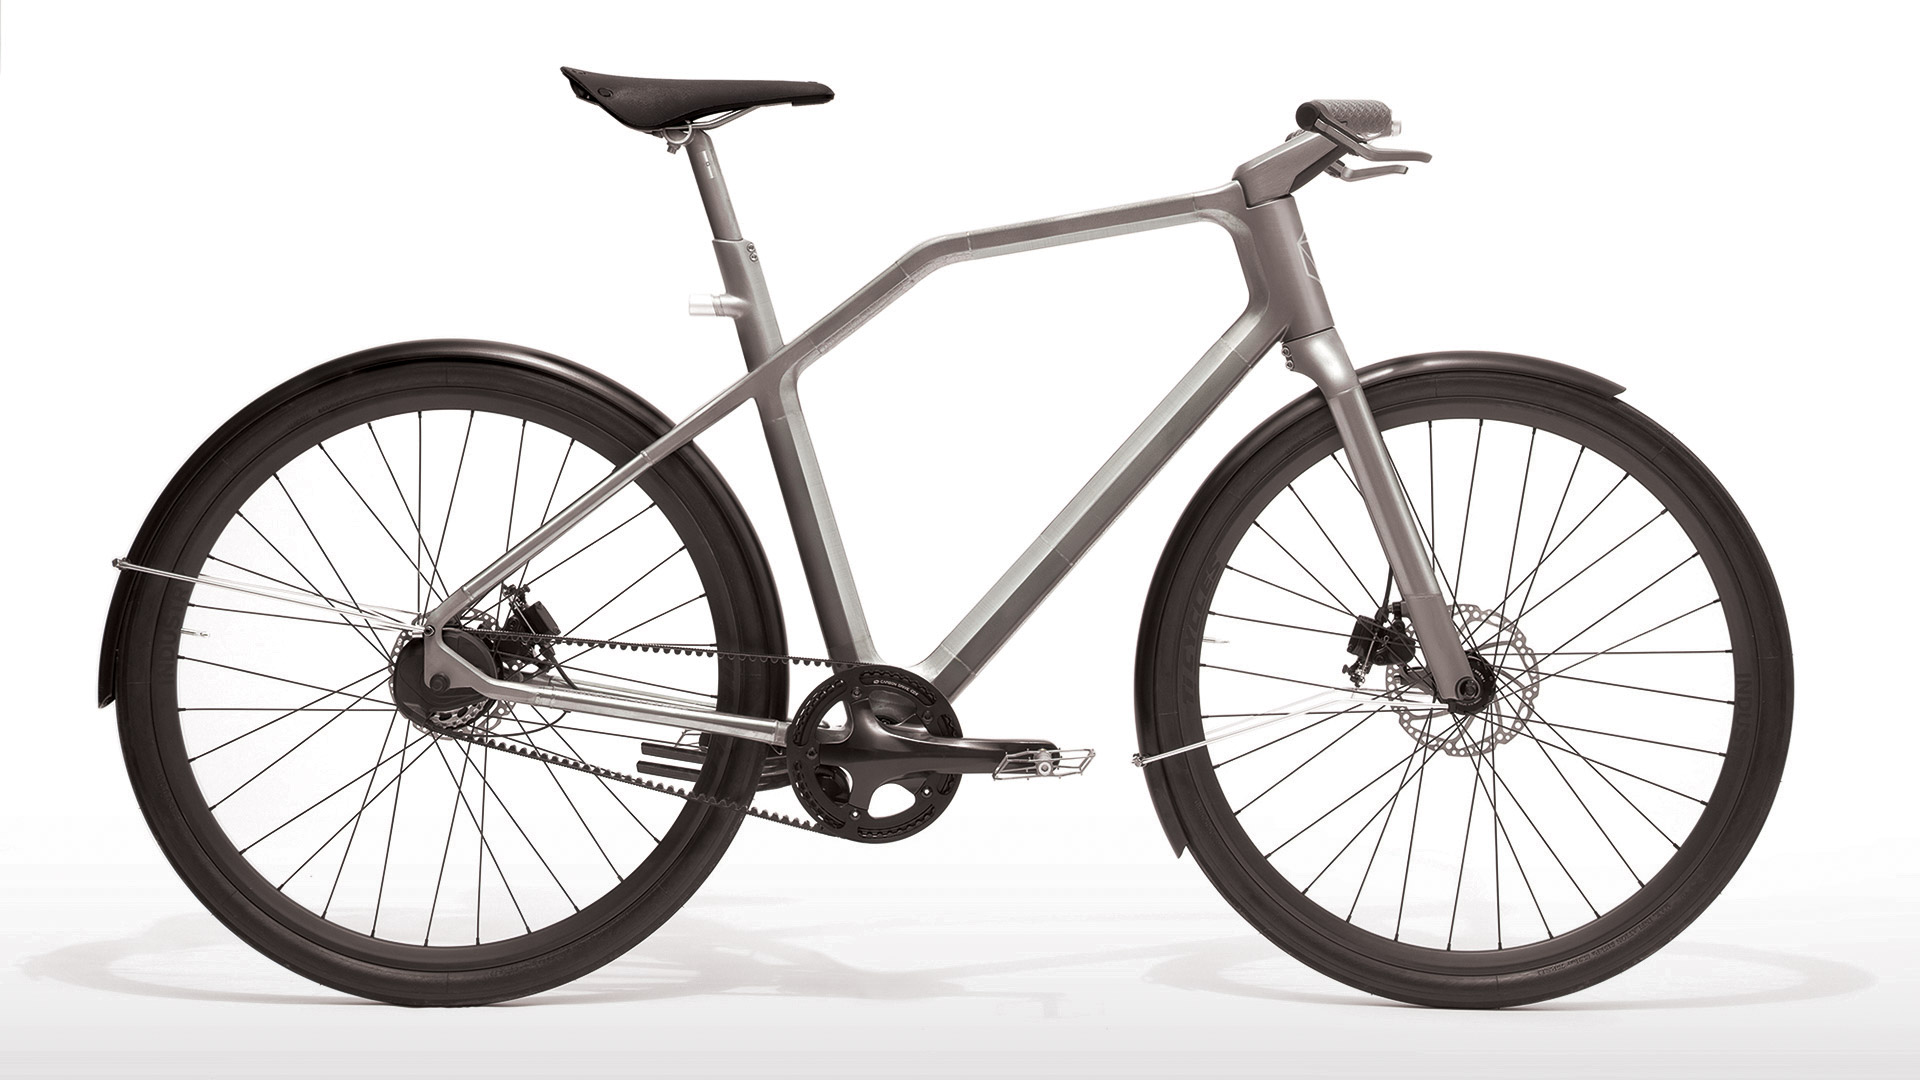 The Solid bike has a clean look because gearshift and brake cables are routed inside the frame.